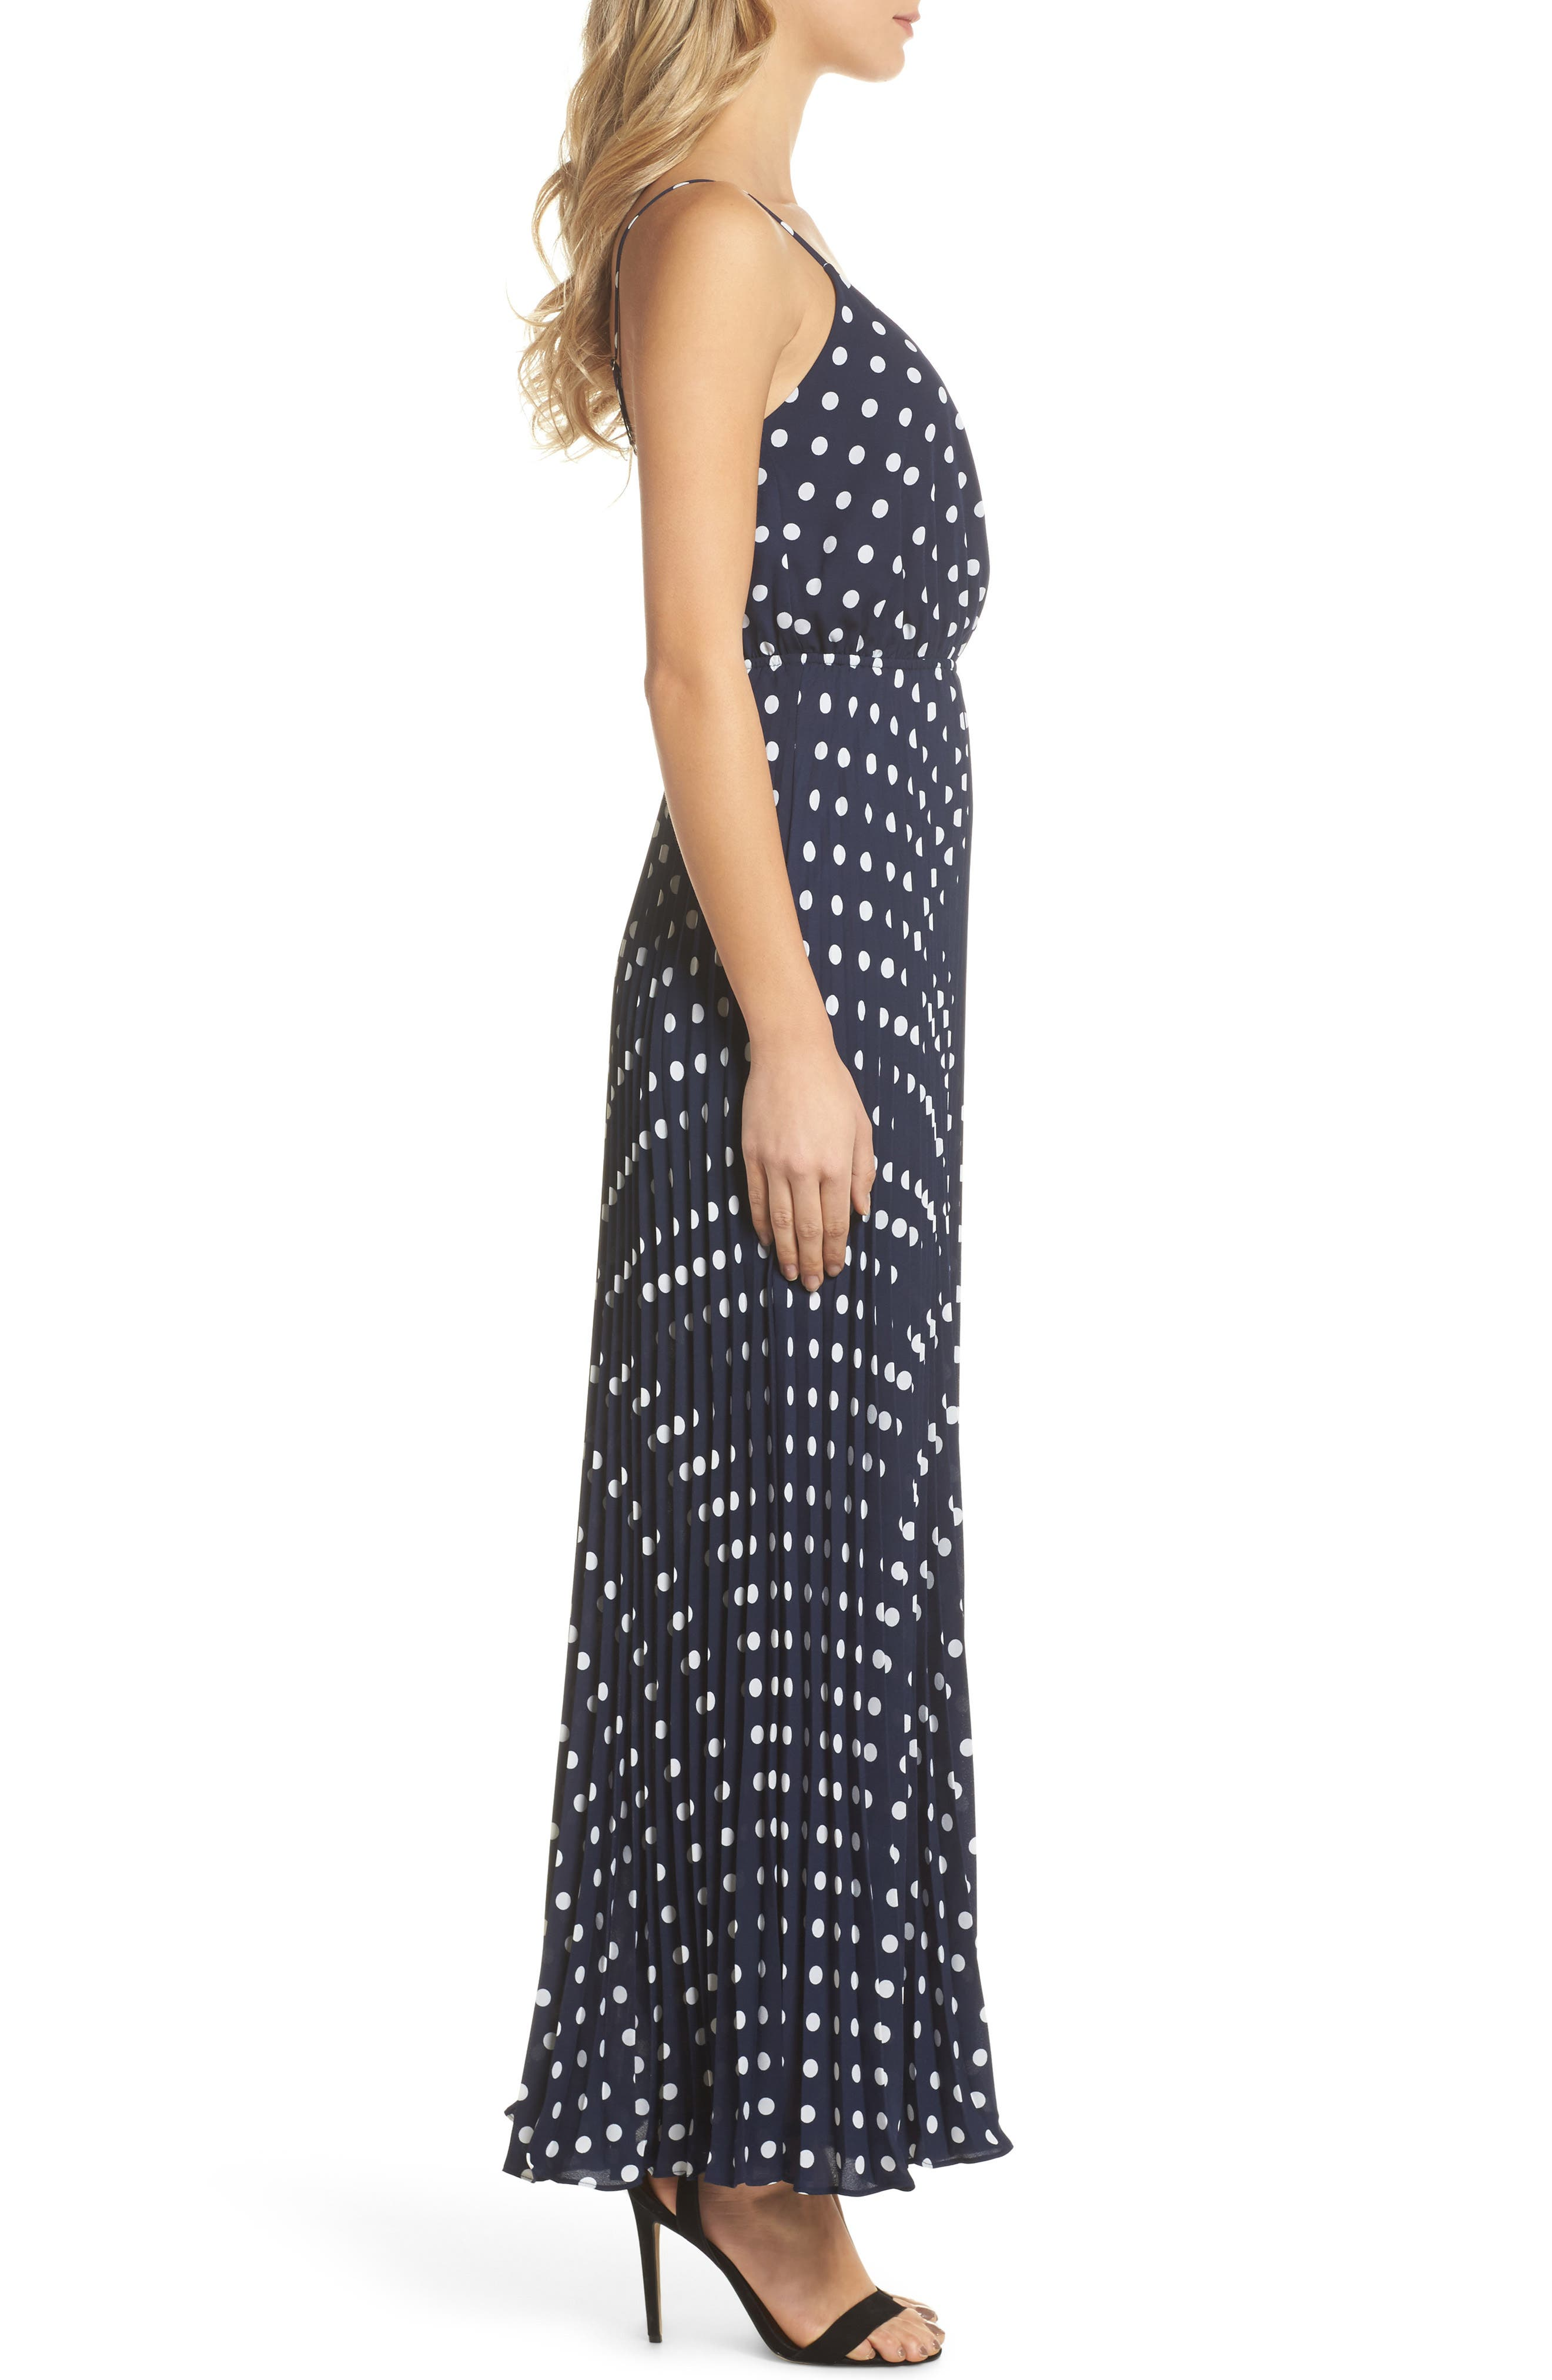 Lily Pond Maxi Dress,                             Alternate thumbnail 3, color,                             400